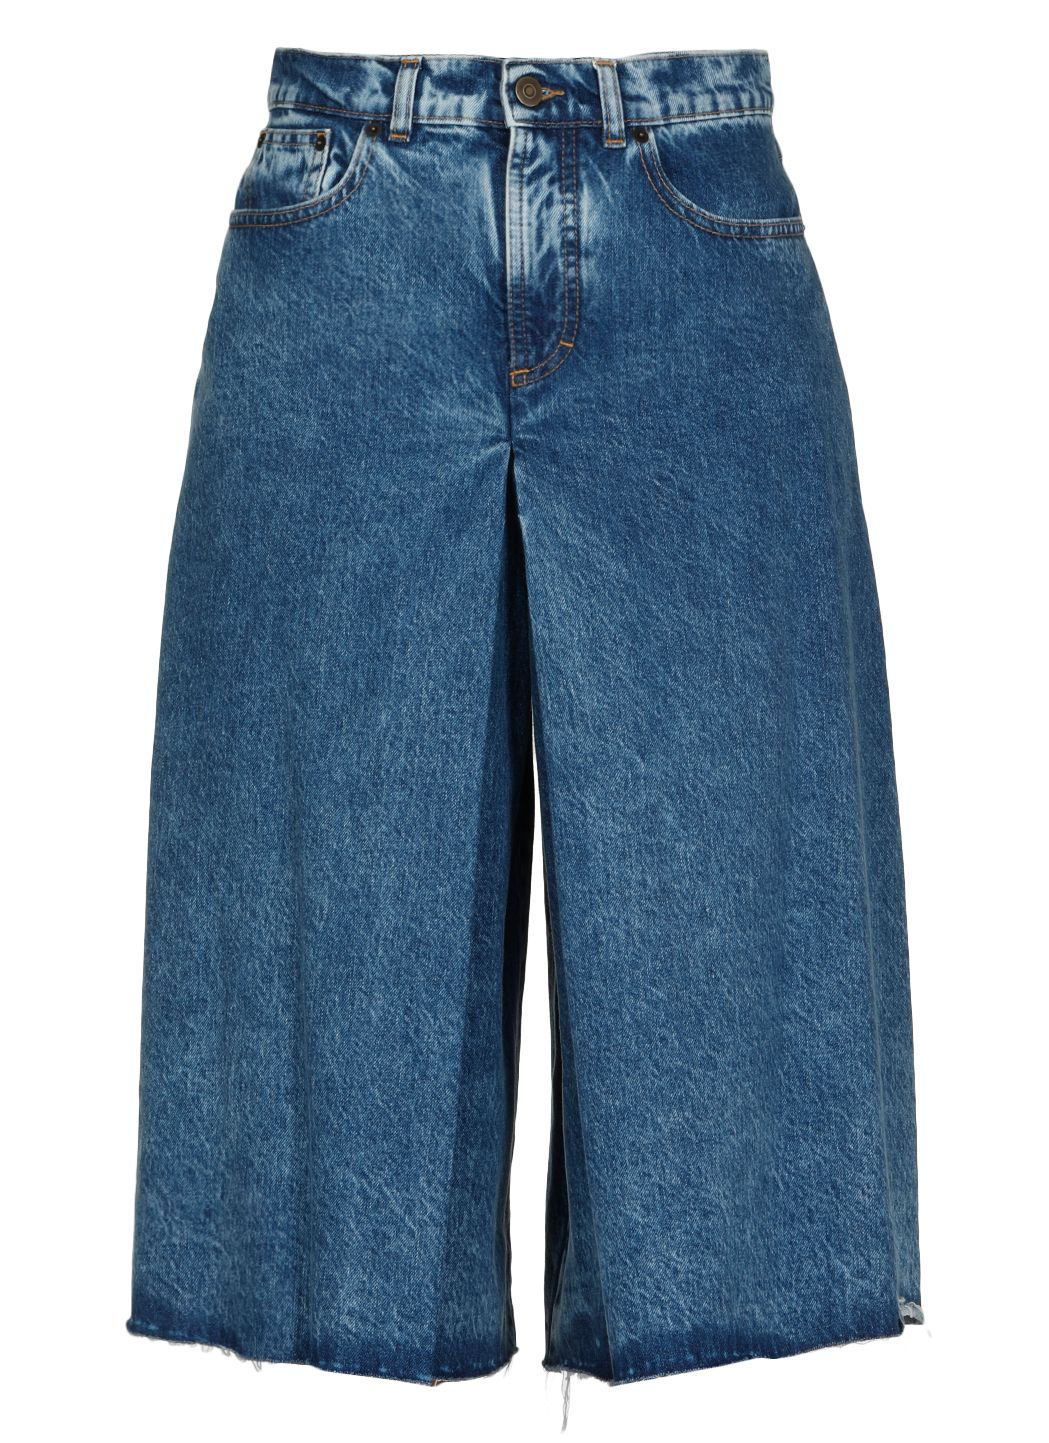 Recycled denim Spliced culottes pants